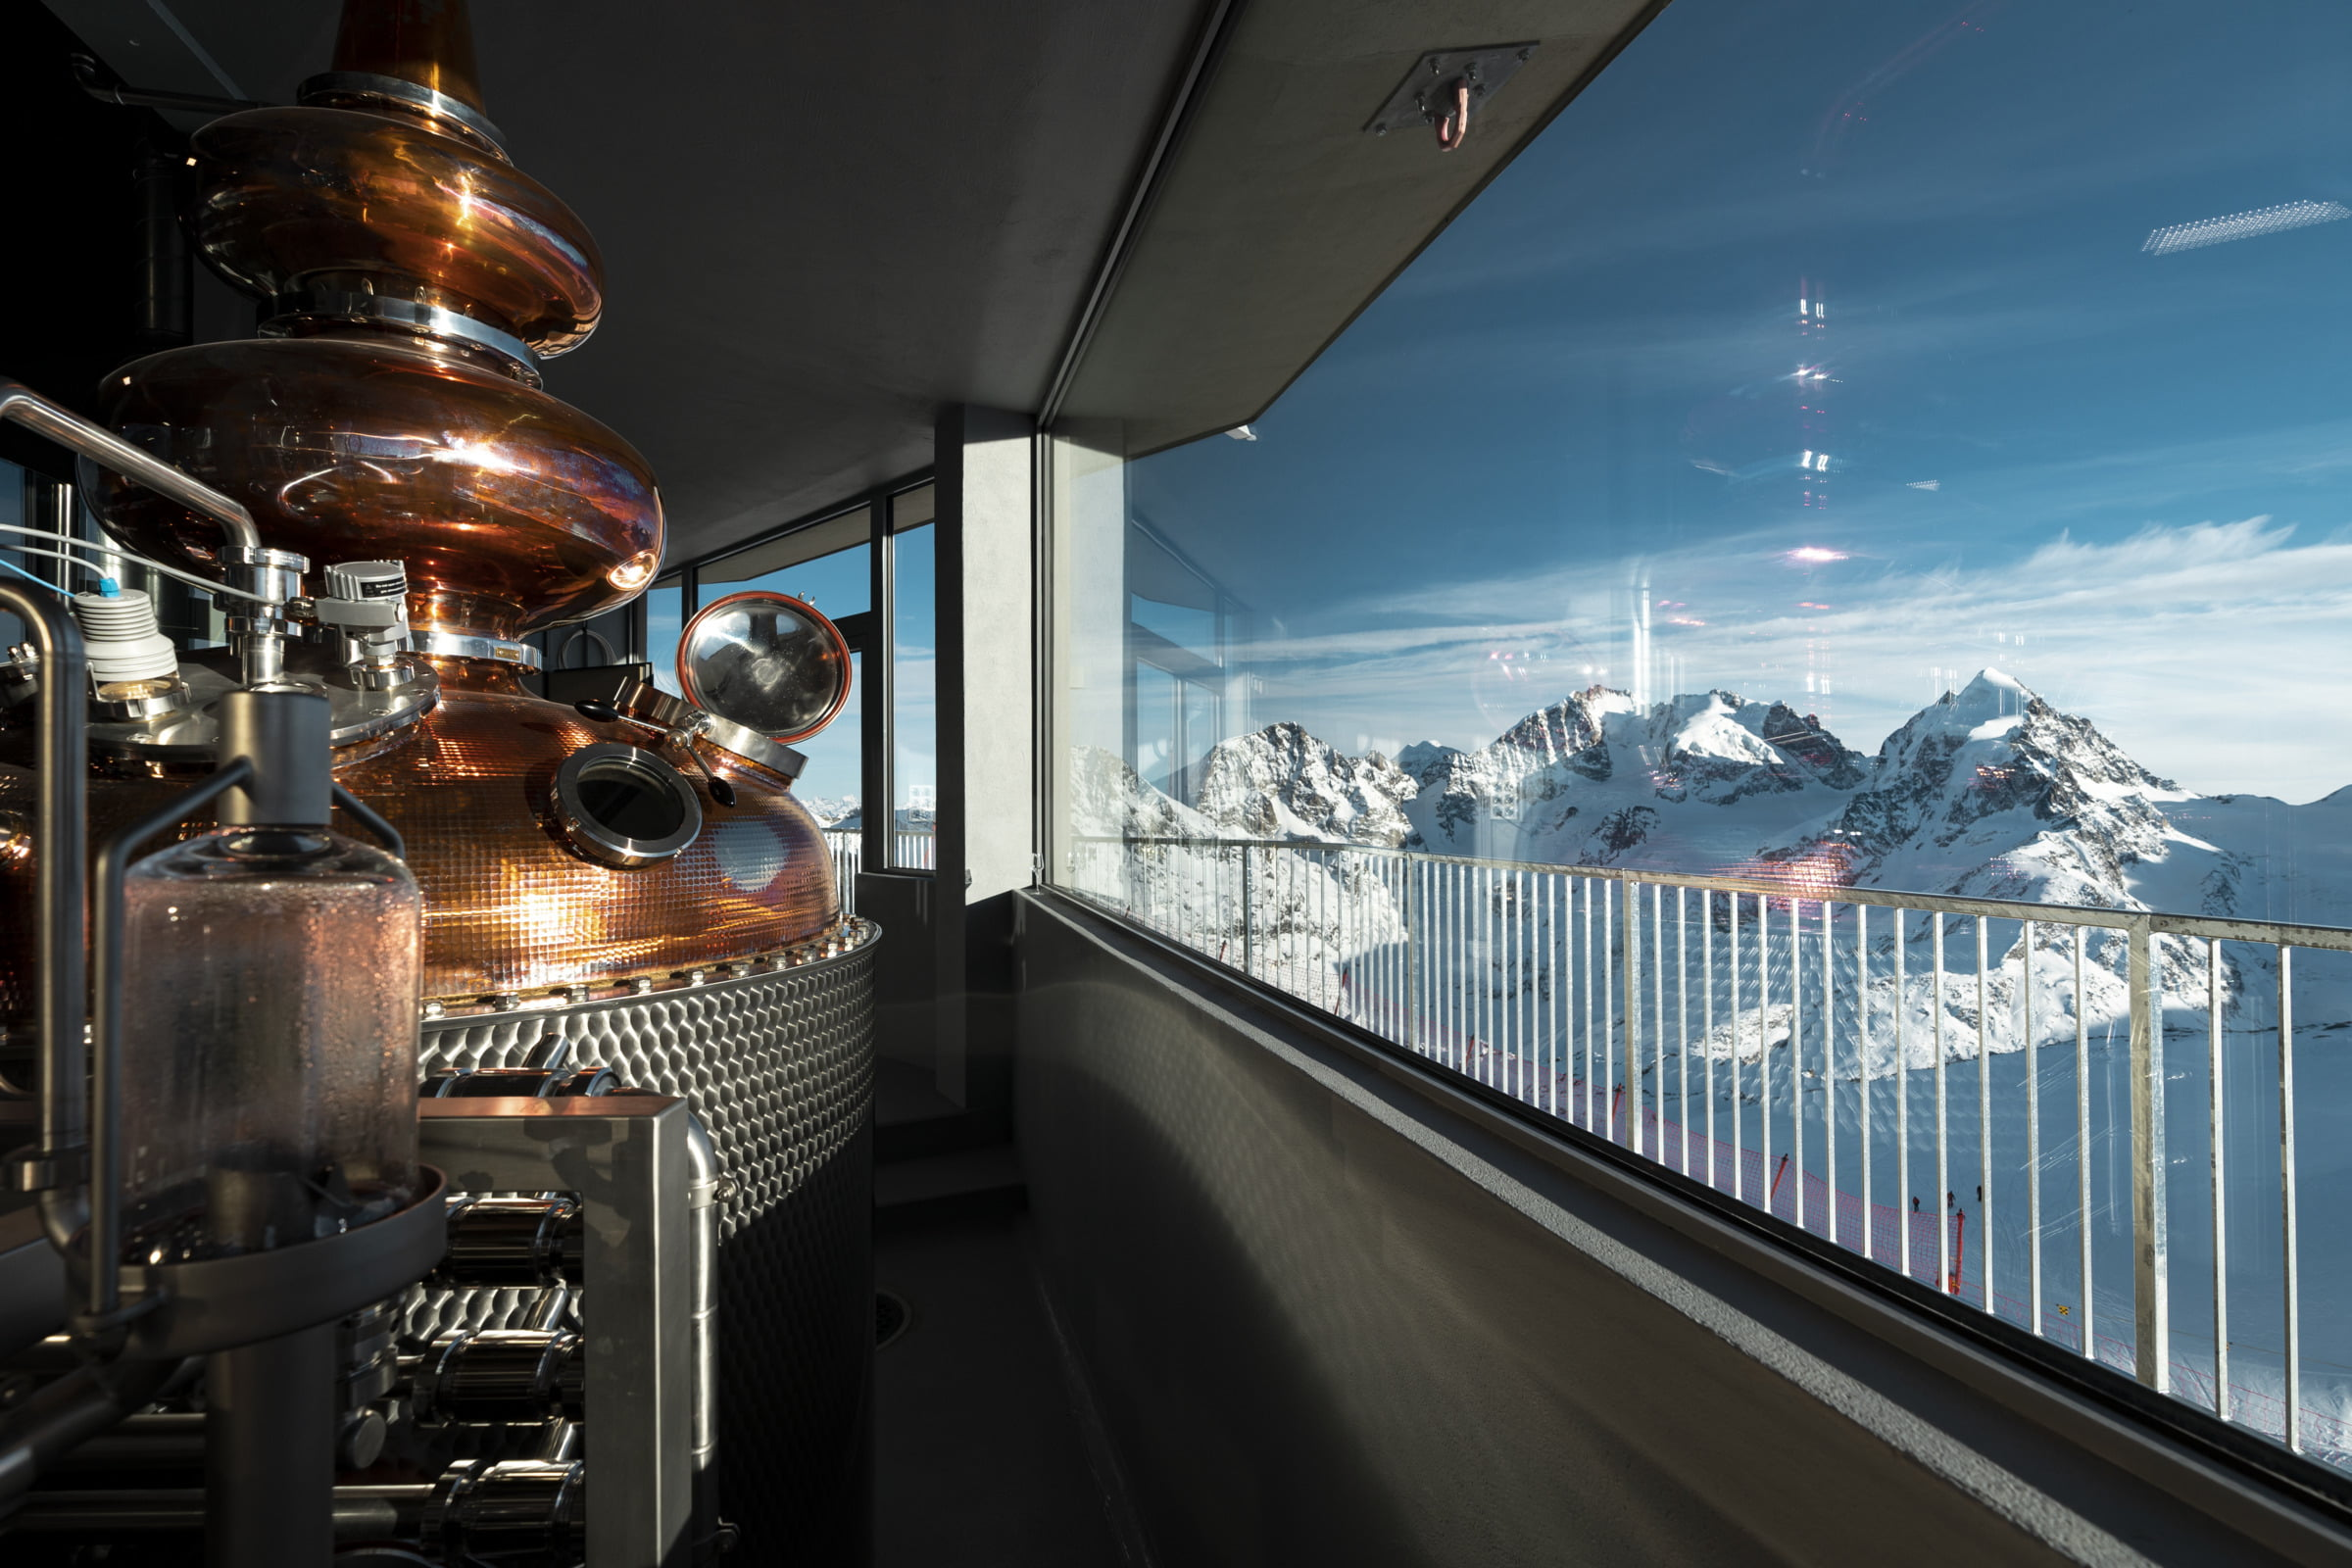 Orma Whisky Corvatsch